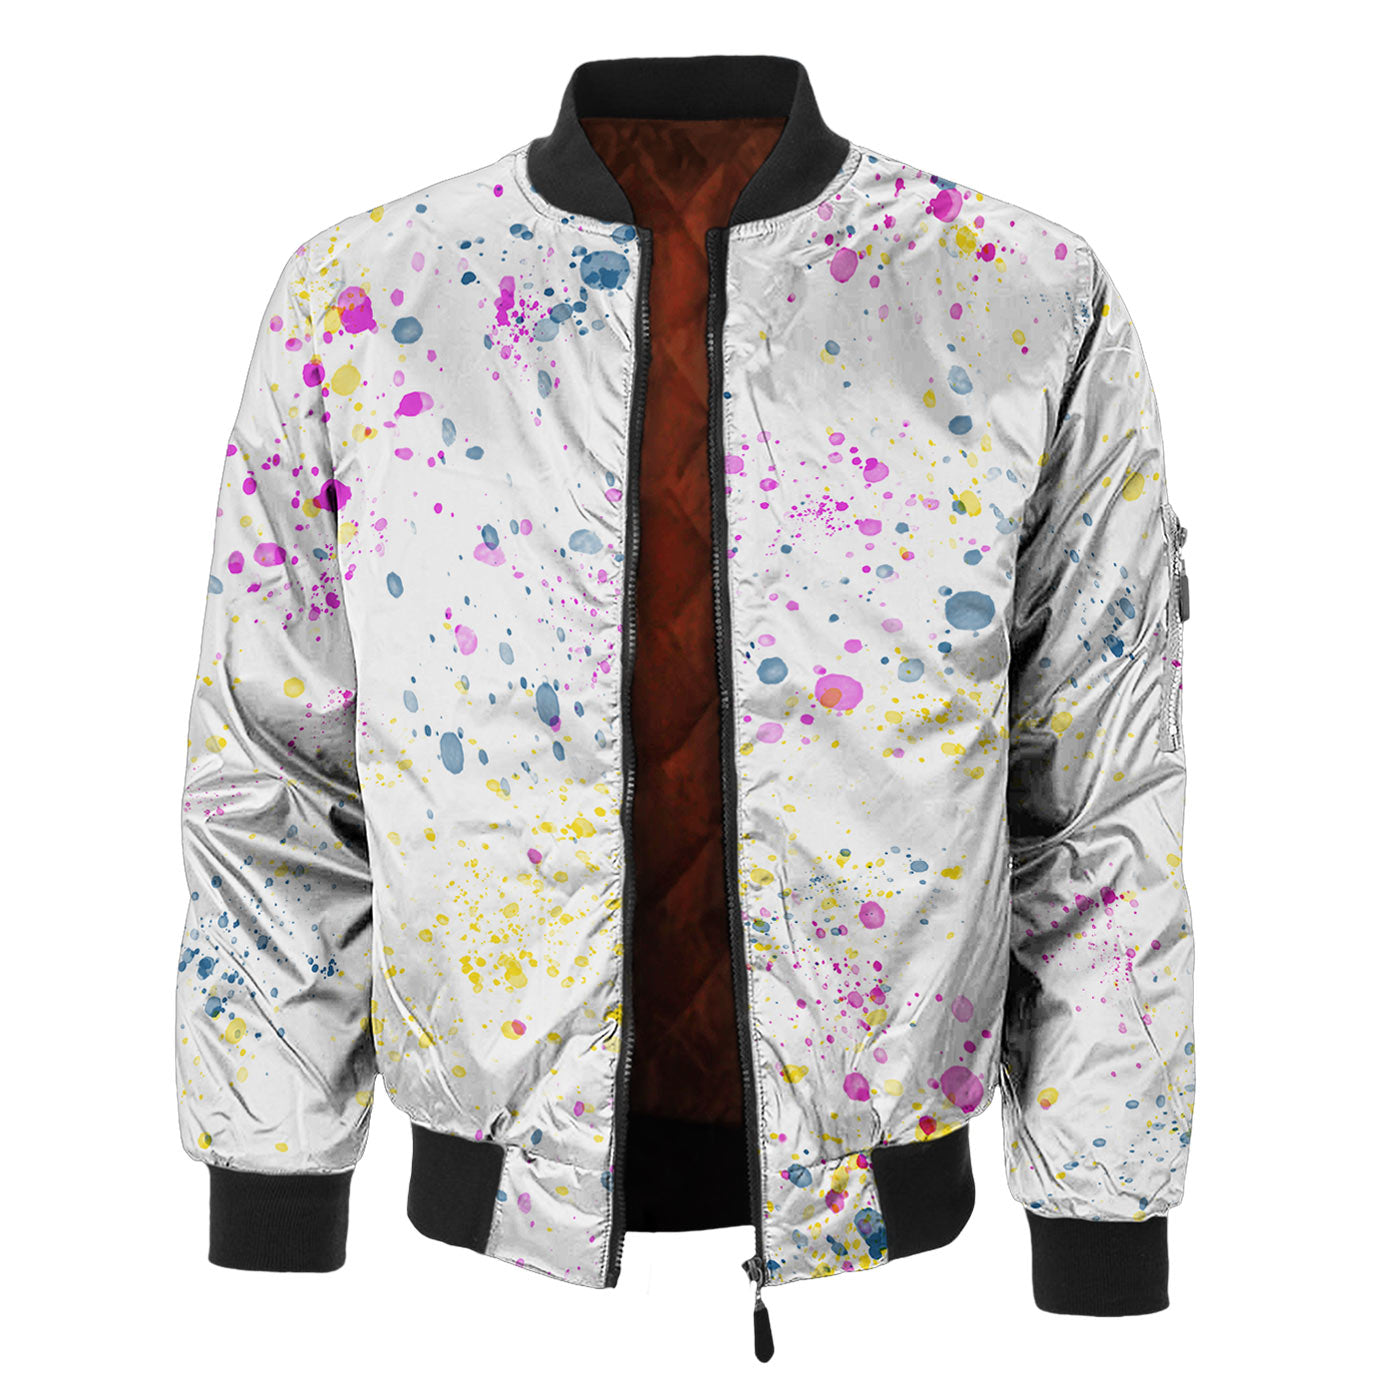 Watercolor Eye Bomber Jacket